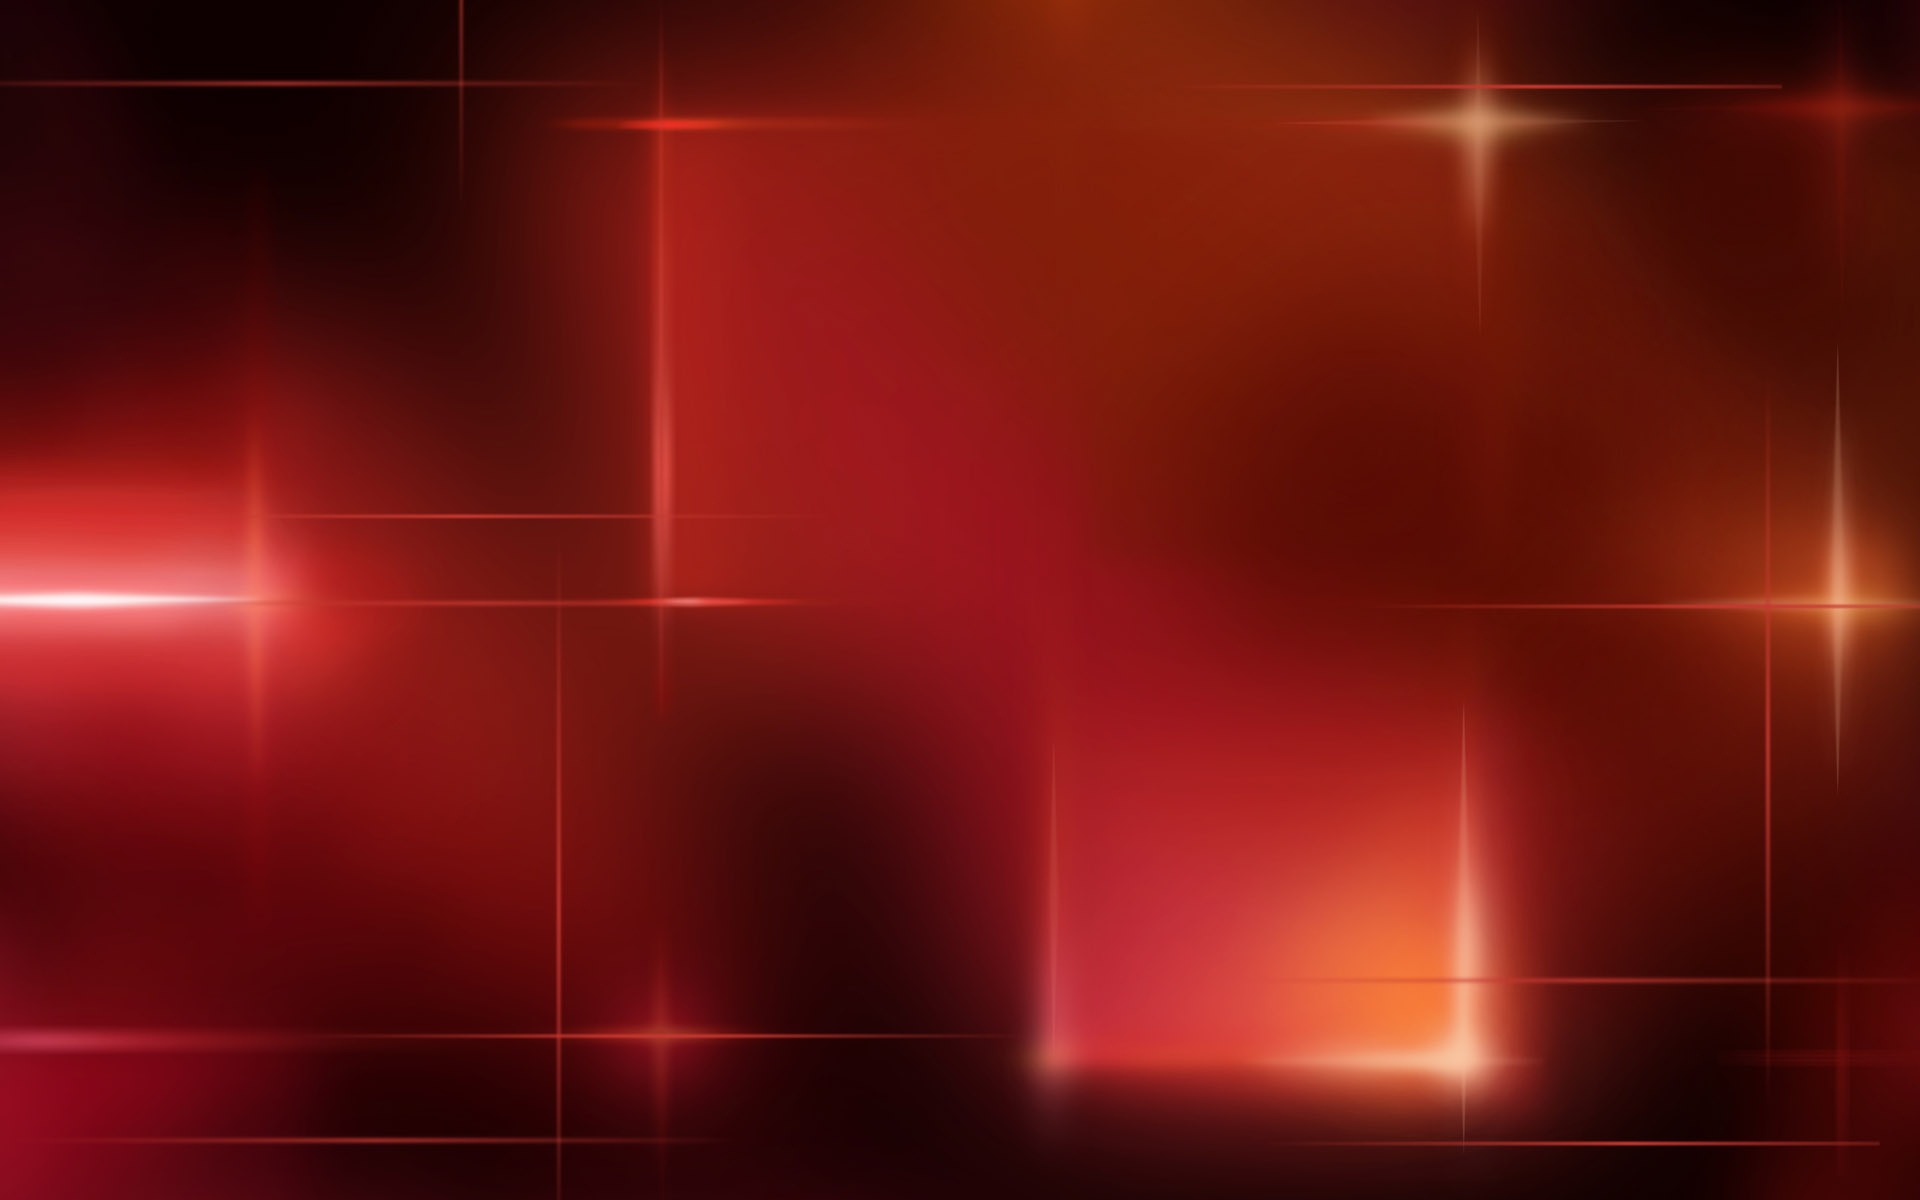 red abstract wallpaper paper wallpapers desktop 1920x1200 1920x1200